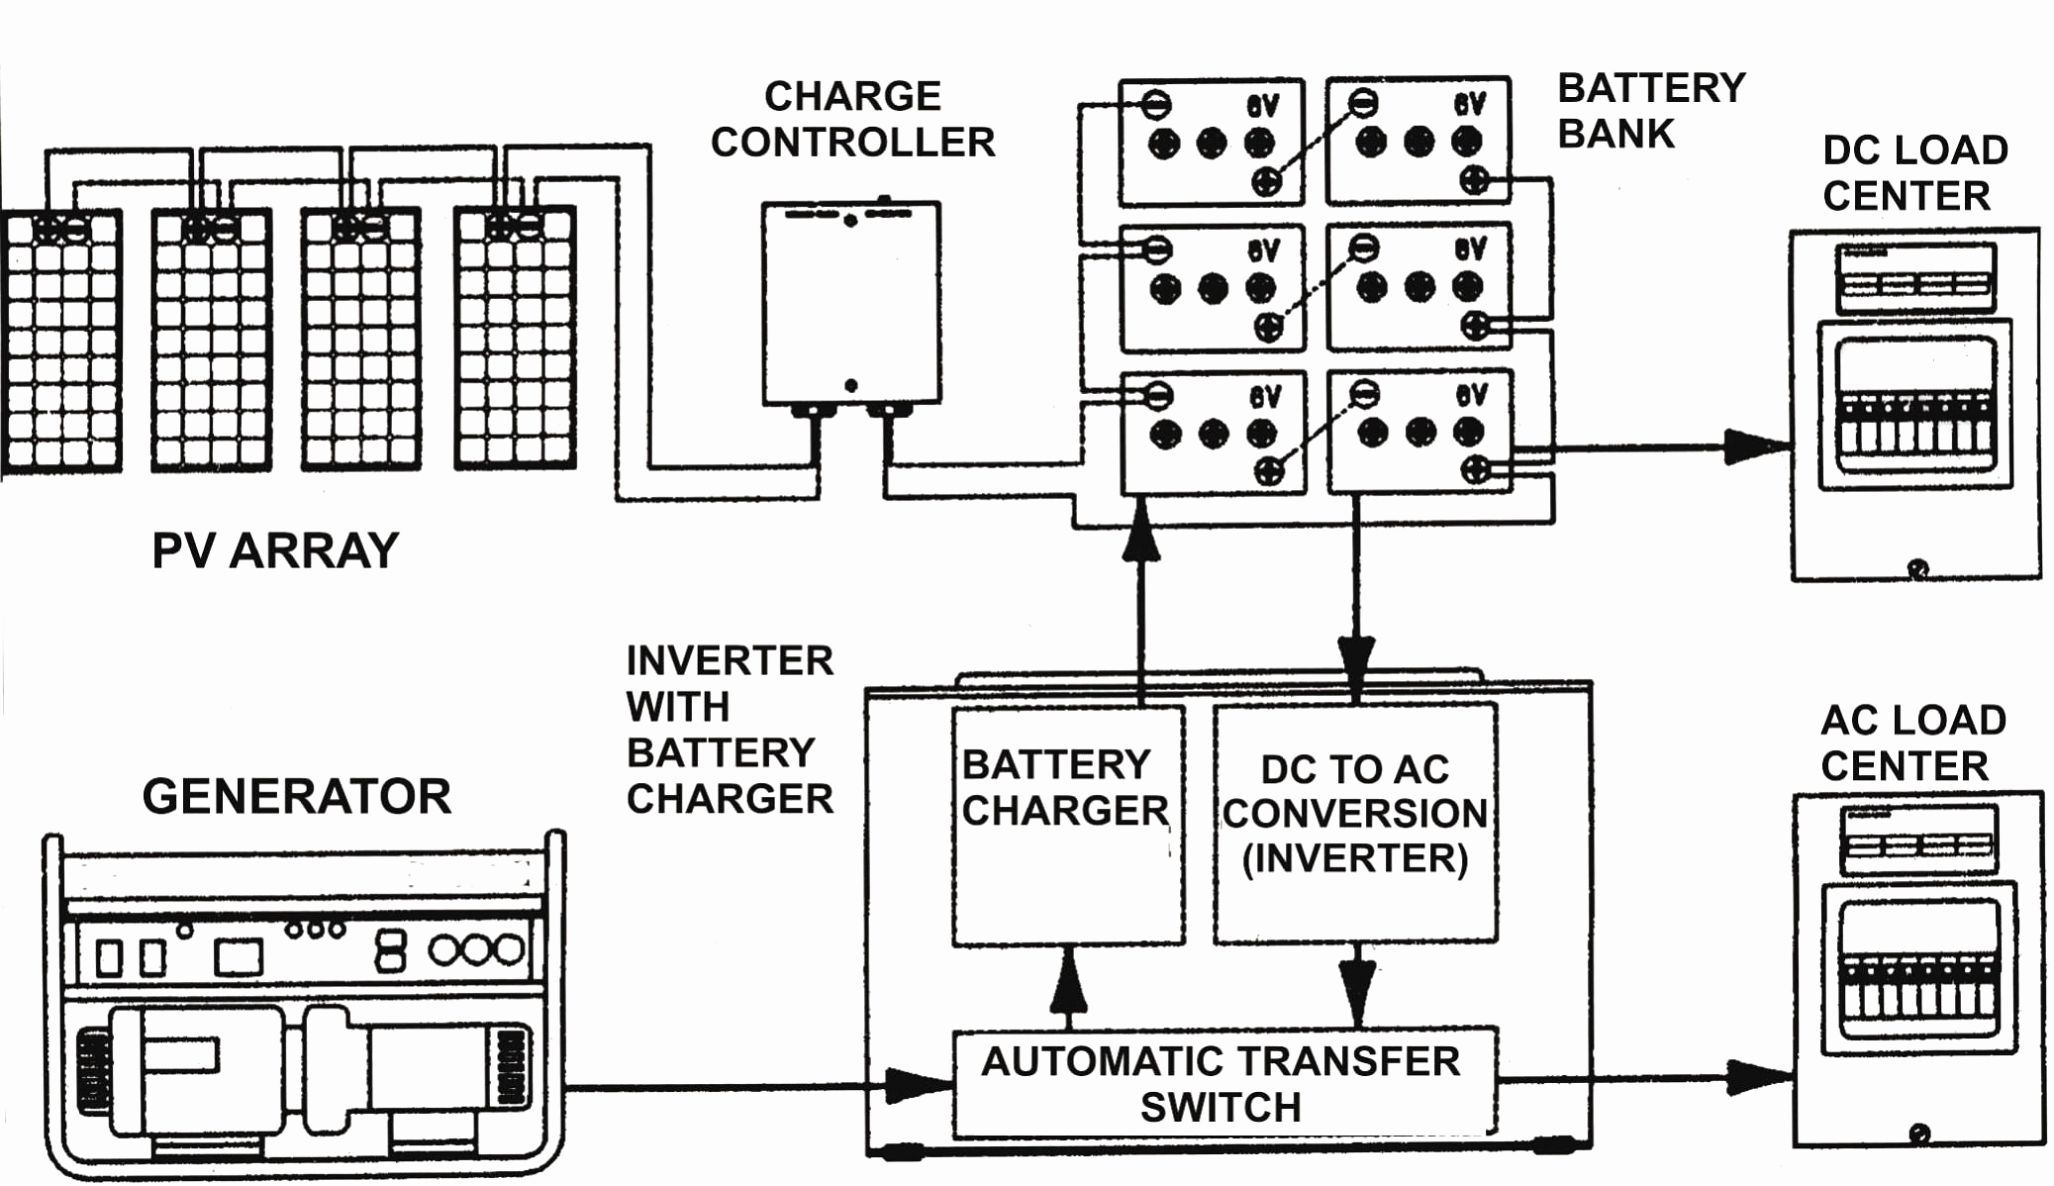 Rv Transfer Switch Wiring Diagram | Manual E-Books - Rv Inverter Charger Wiring Diagram